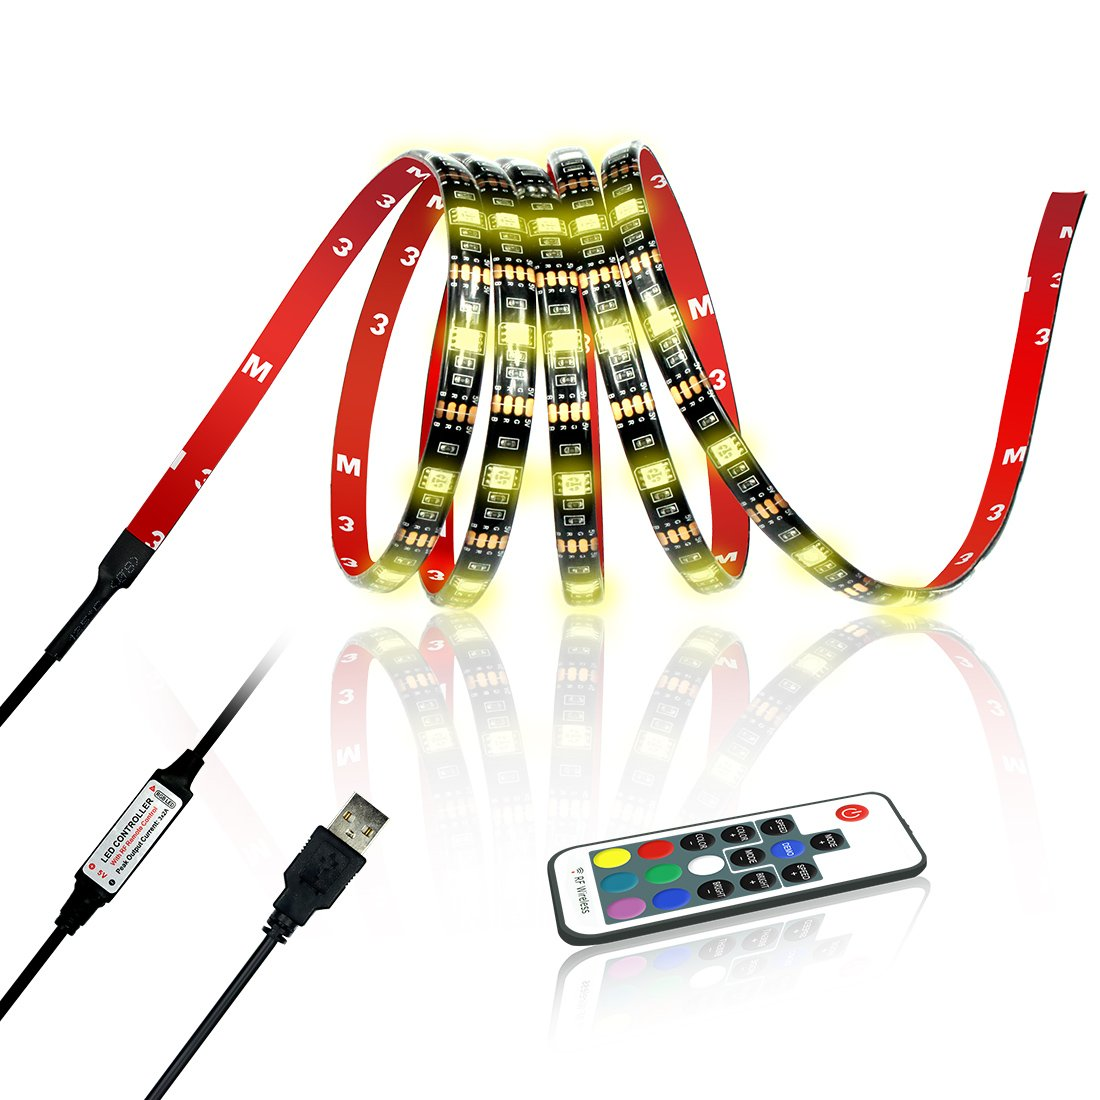 Achivy USB LED Strip Light - 78 inches/2M Color Changing RGB 5050 DC 5V LED TV Backlight Strip with 17Keys RF Remote, Waterproof, Adhesive Bias Lighting for HDTV, Desktop Monitors, Kitchen Cabinets